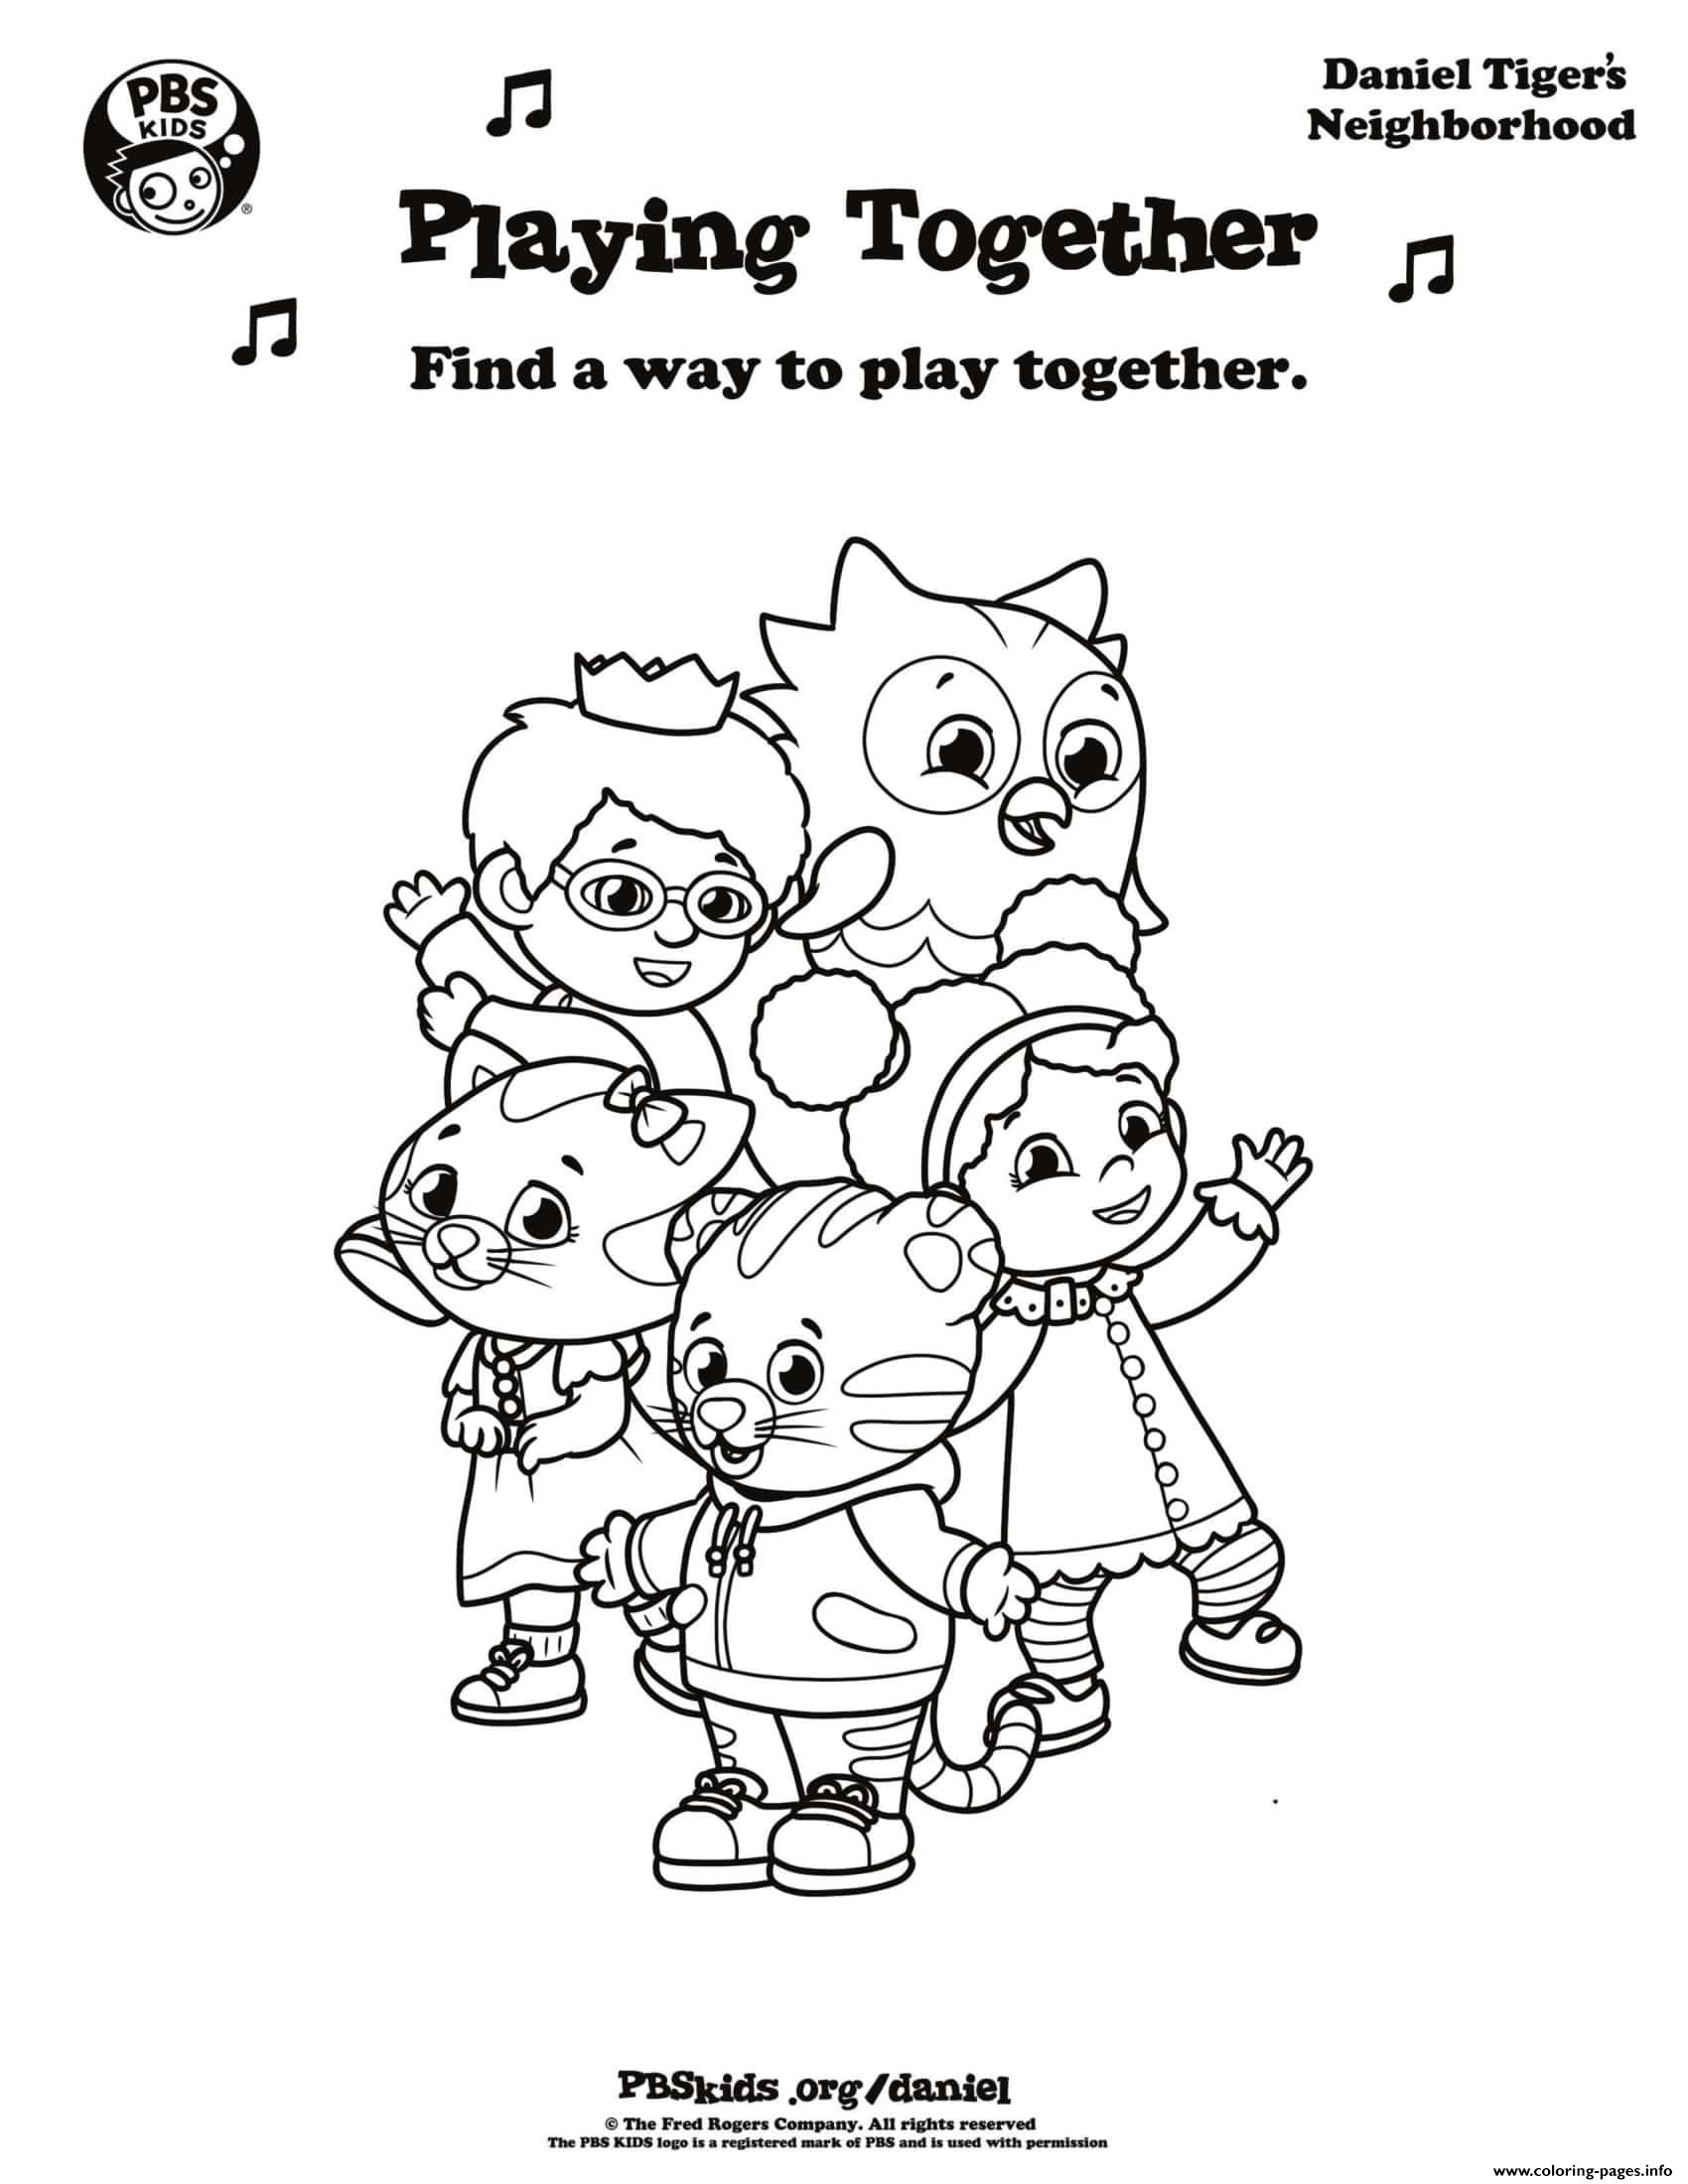 Playing Together Daniel Tiger Min Coloring Pages Printable